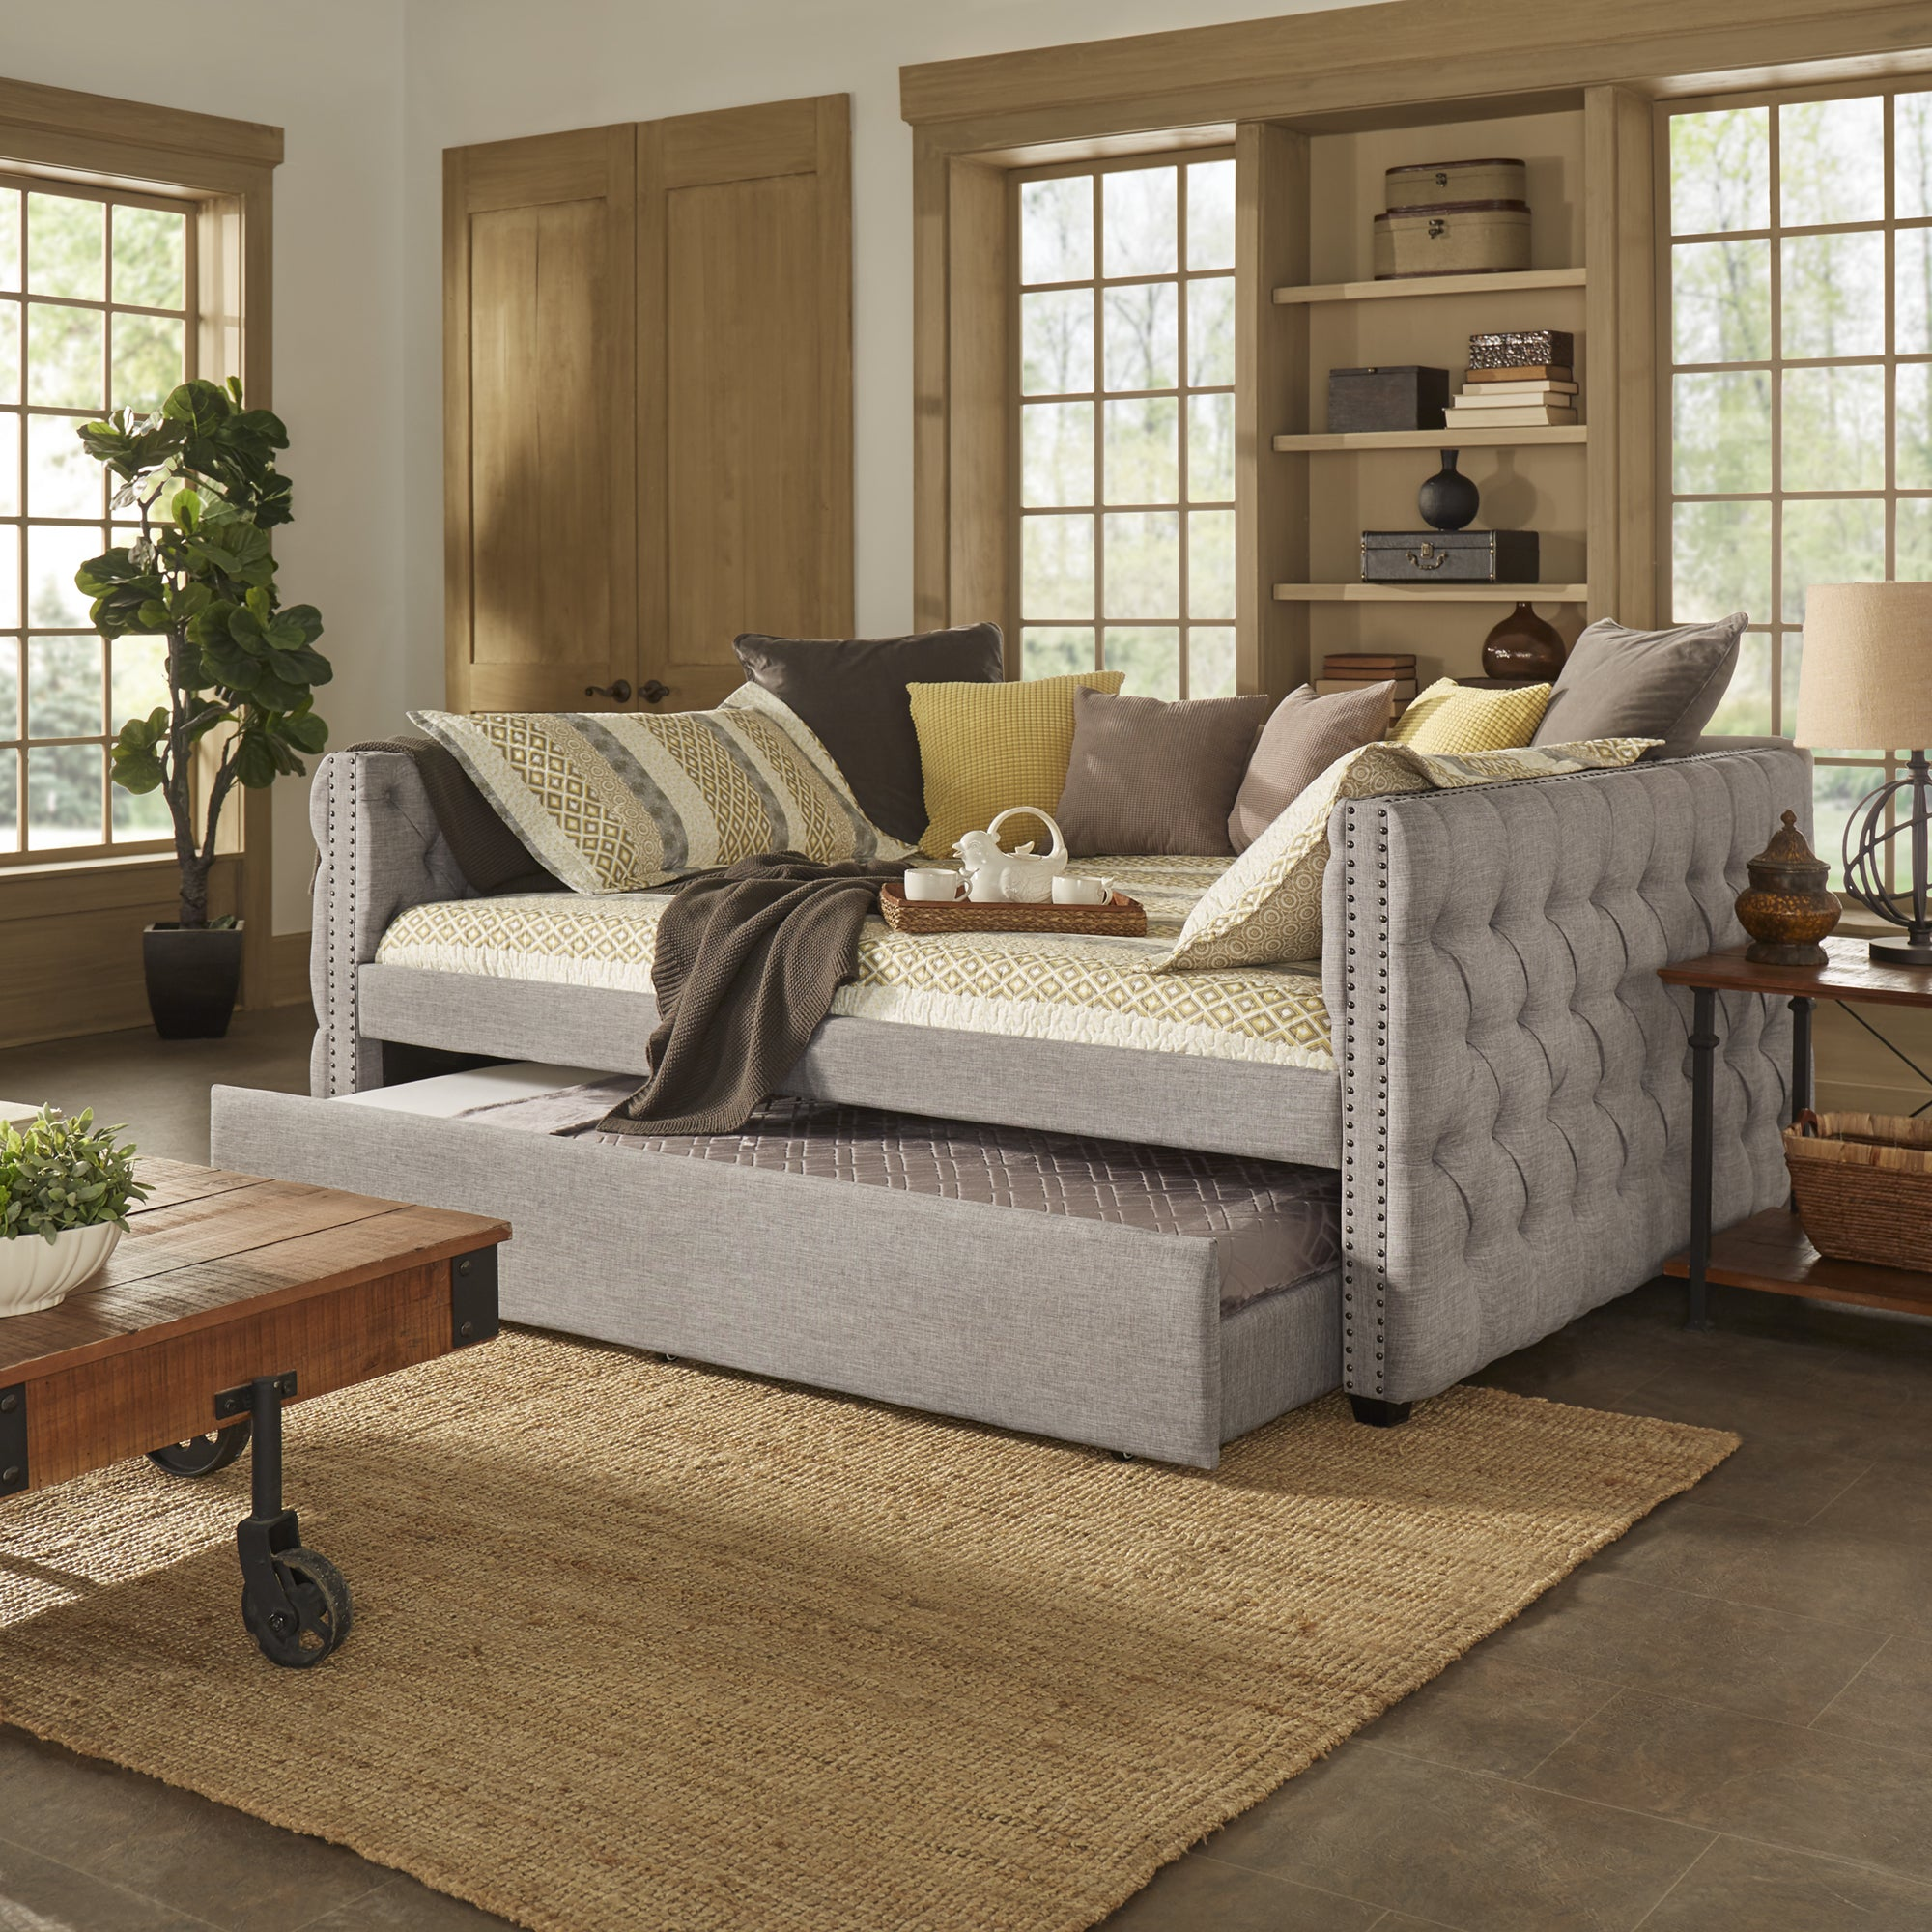 Picture of: Knightsbridge Queen Size Tufted Nailhead Chesterfield Daybed And Trundle By Inspire Q Artisan Overstock 14341348